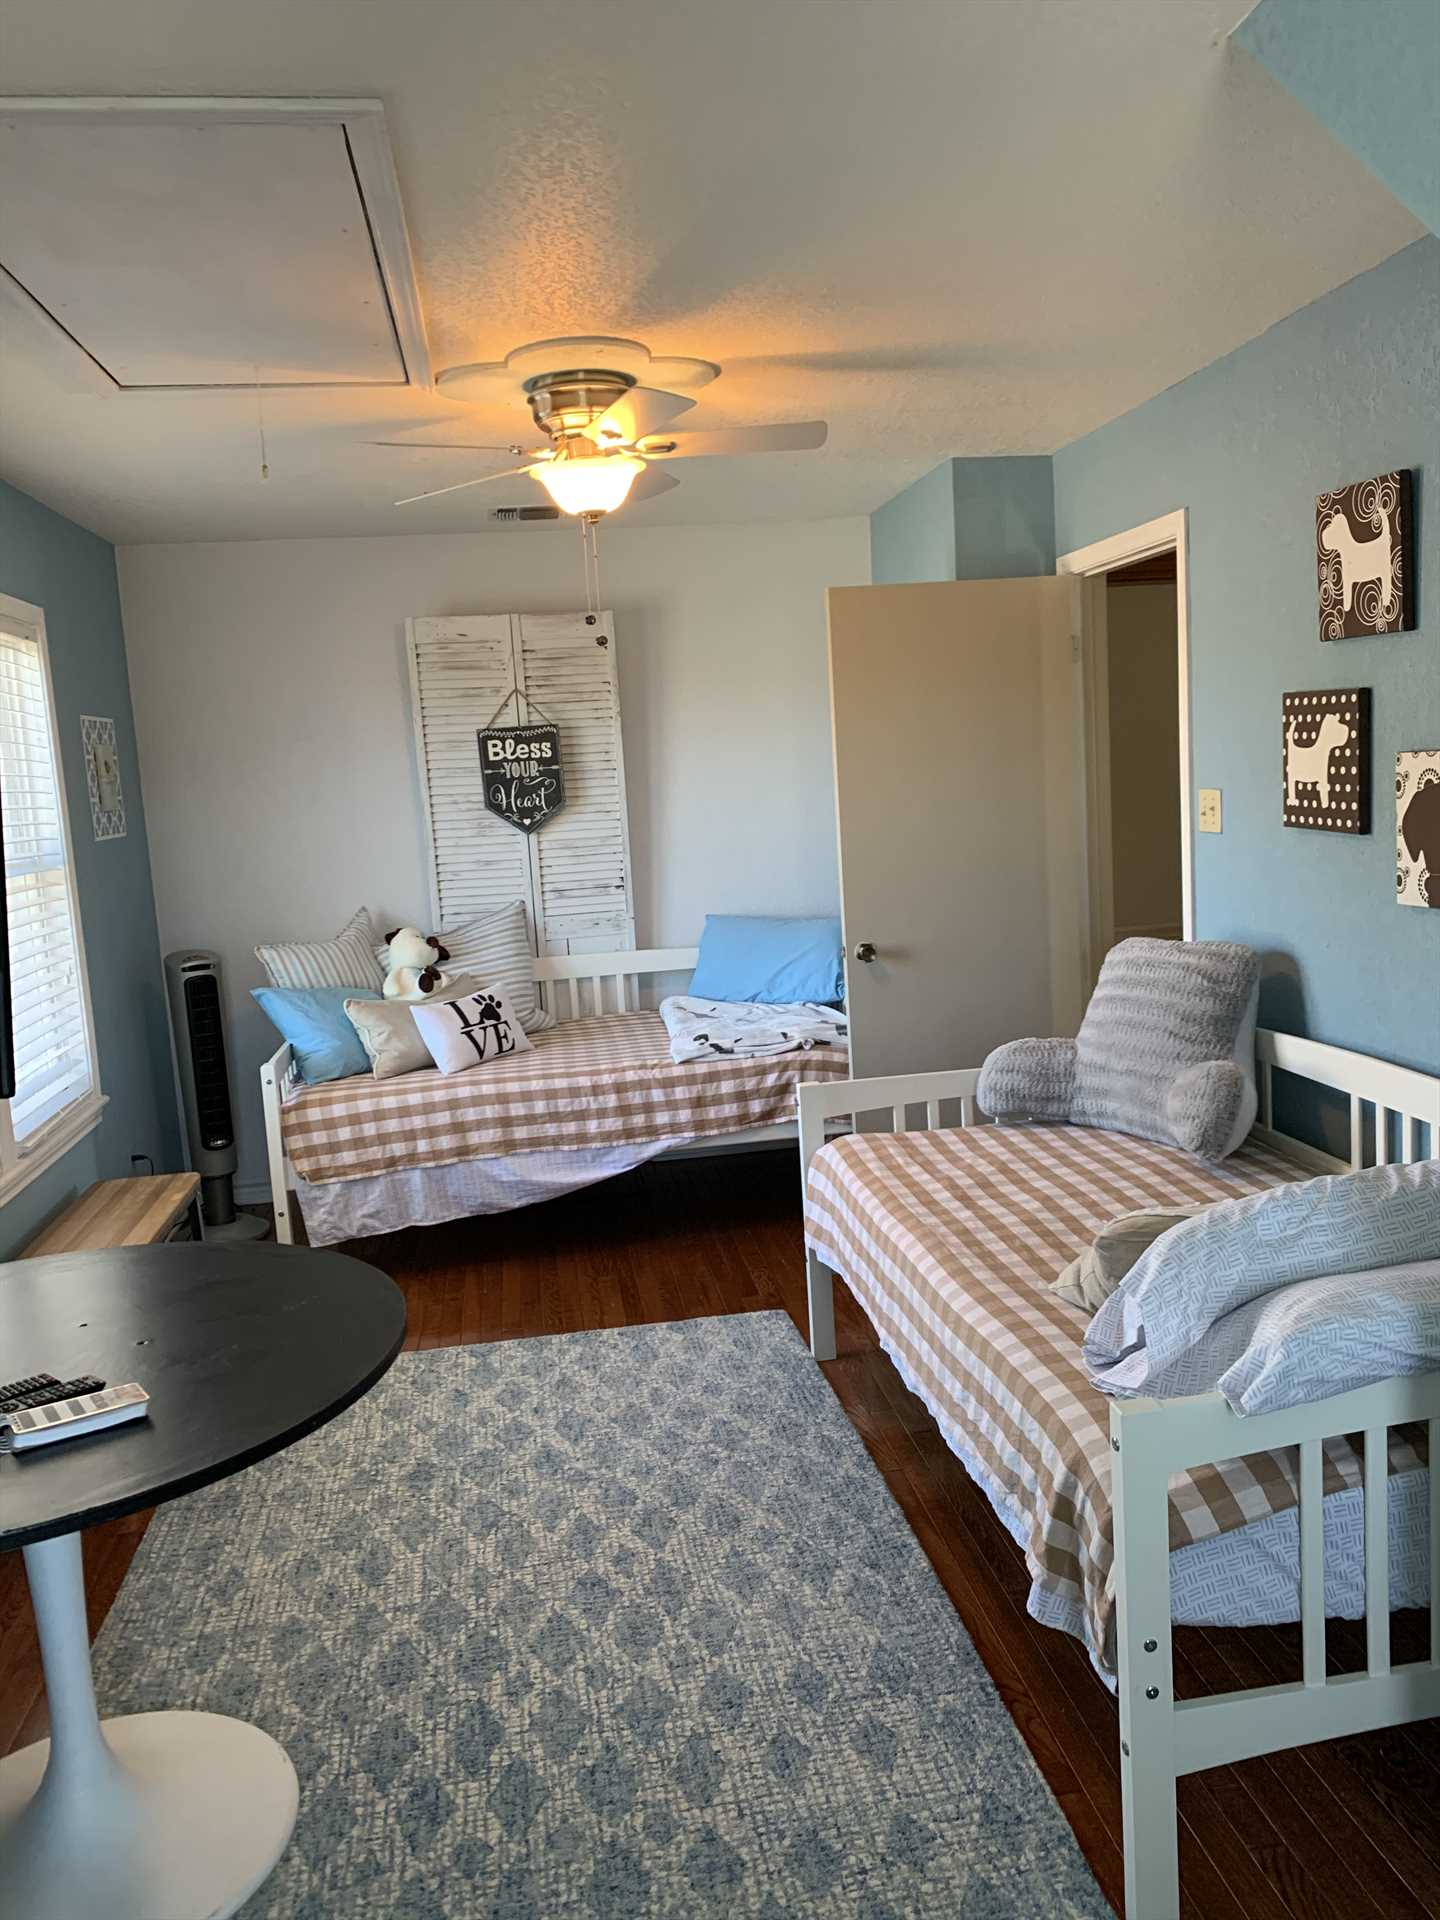 Two twin beds in the second bedroom help create a relaxing atmosphere for two guests. It makes a great kids' room!